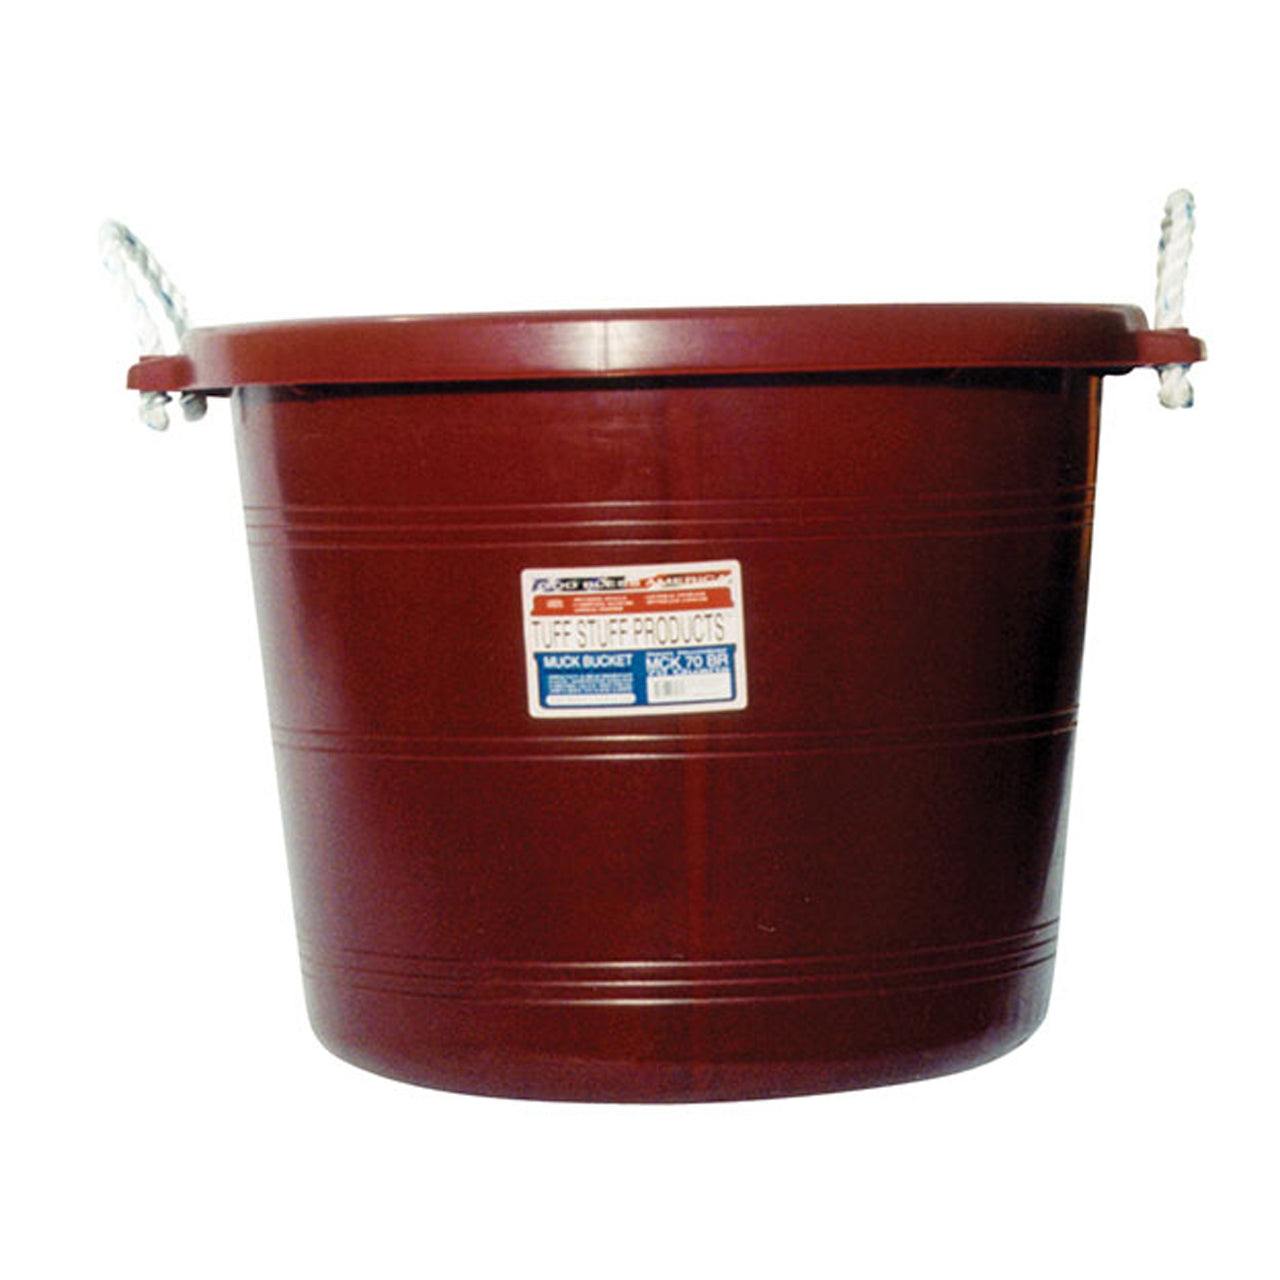 Tuff Stuff Muck Bucket 70 Qts - Burgundy - Buckets Pails Feeders Scoops Tubs Bottles Tuff Stuff - Canada